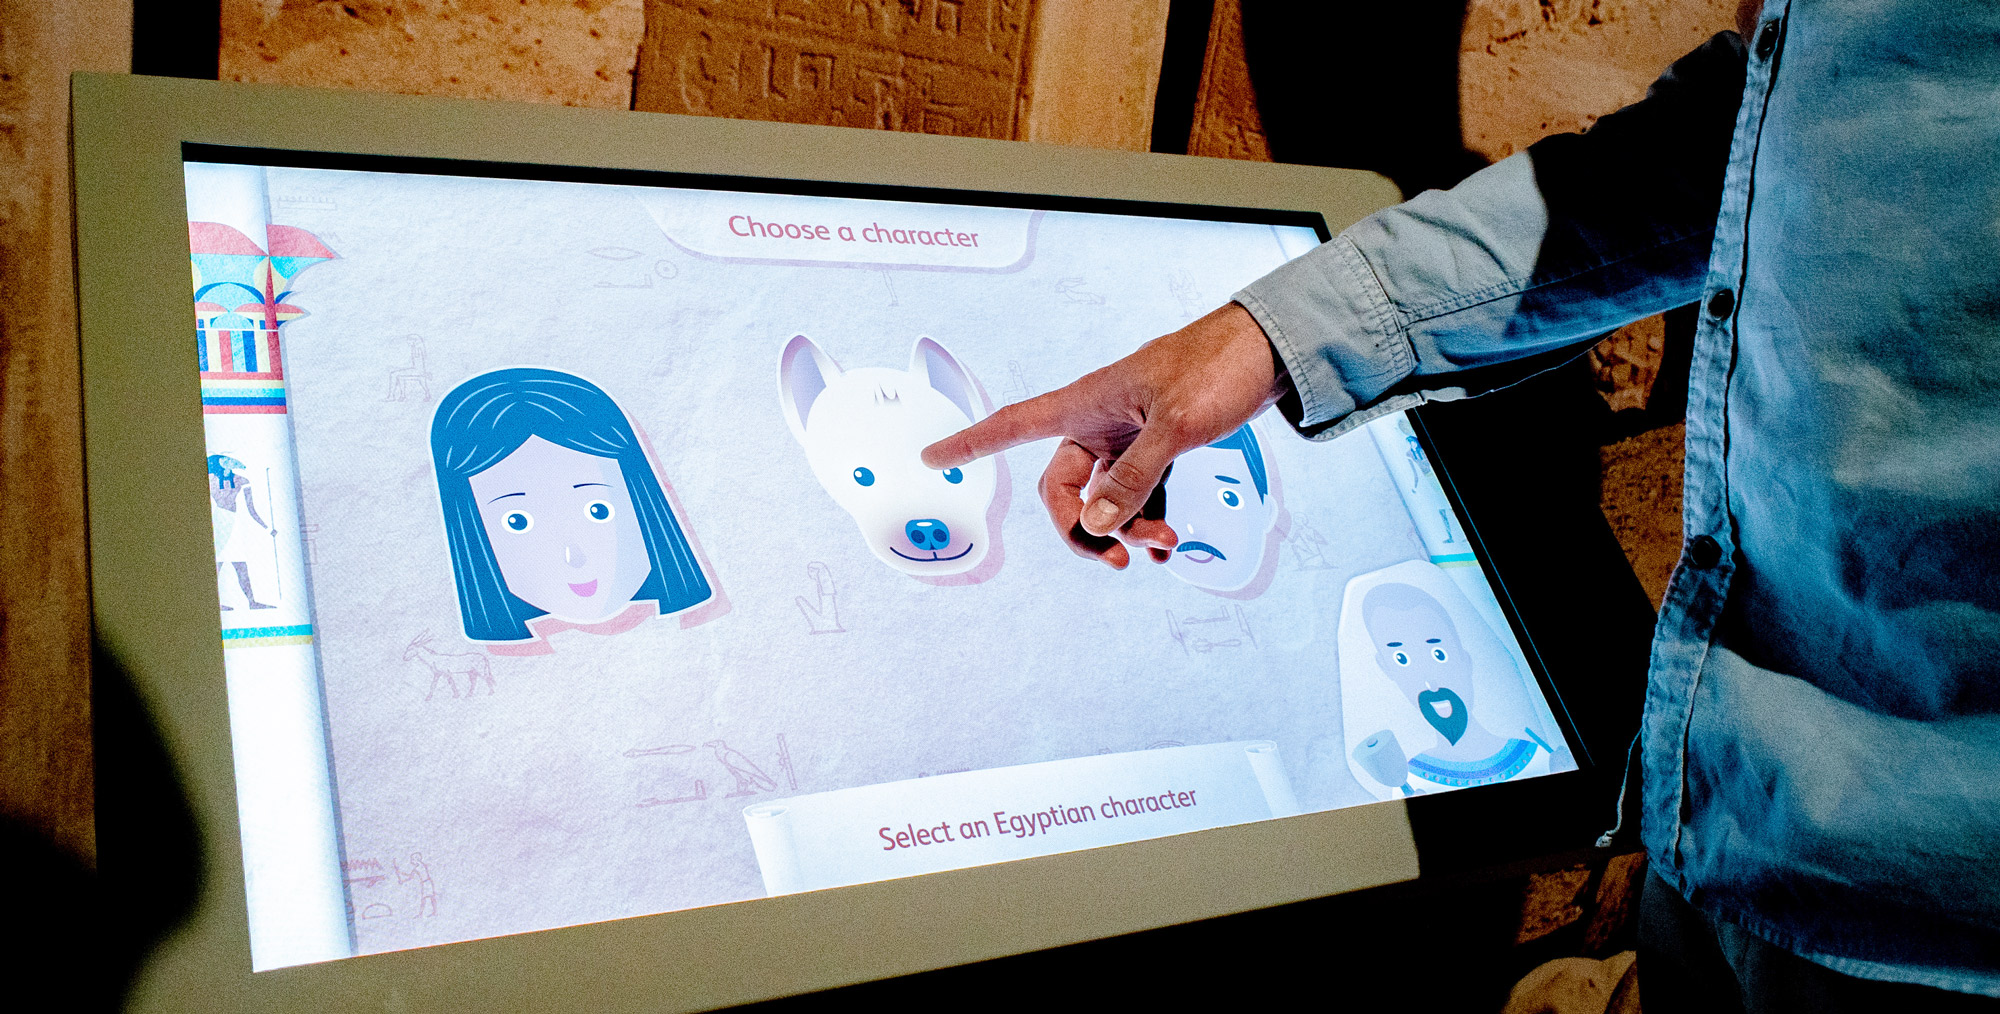 Hieroglyphs interactives - a visitor chooses a character